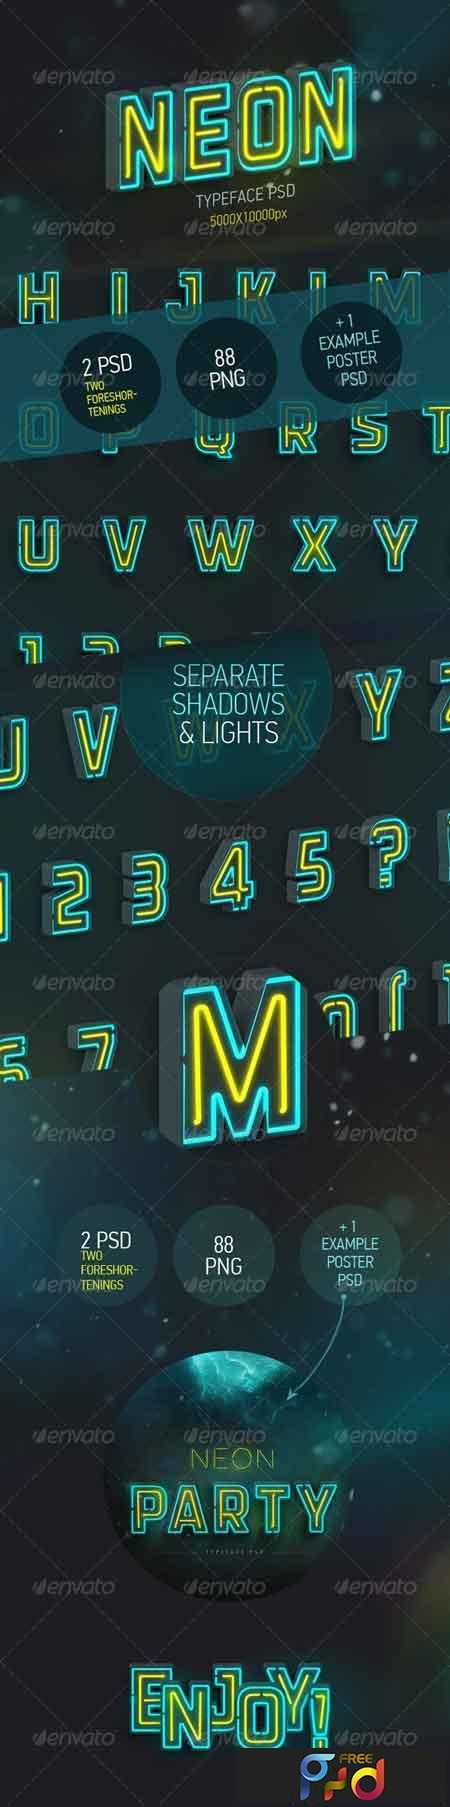 1809226 Neon Typeface (3 PSD, 88 PNG) 7789963 1